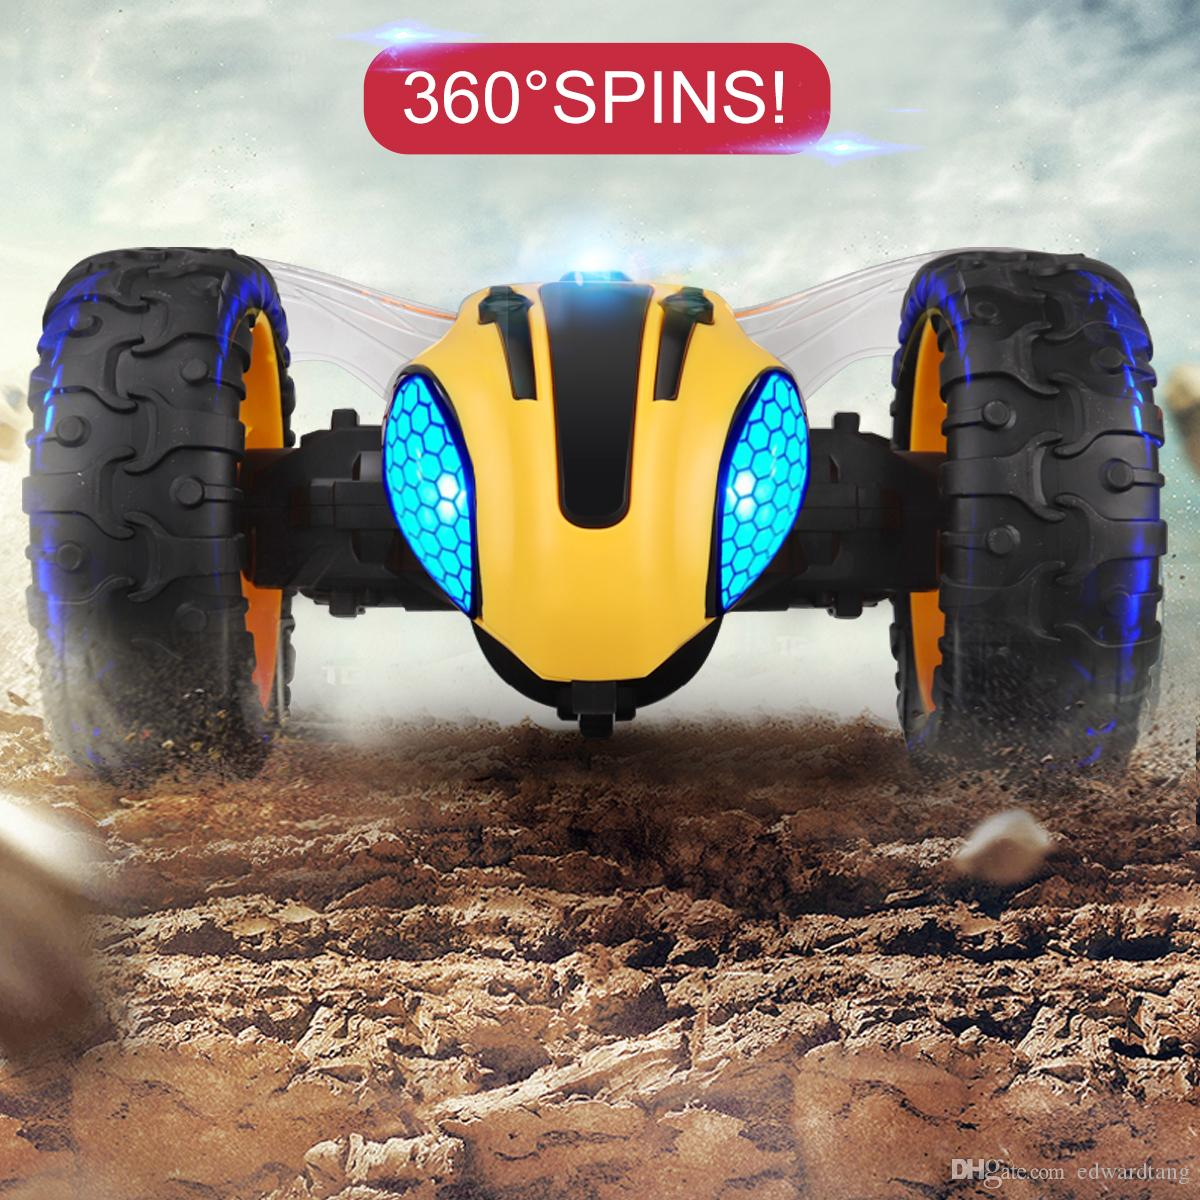 2.4G Remote Control Bumblebee Stunt Car Toy, 360 Degree Rotate, Colorful Lights Eyes& Music, Vacuum Tyre, Xmas Kid Birthday Boy Gift, 3-2